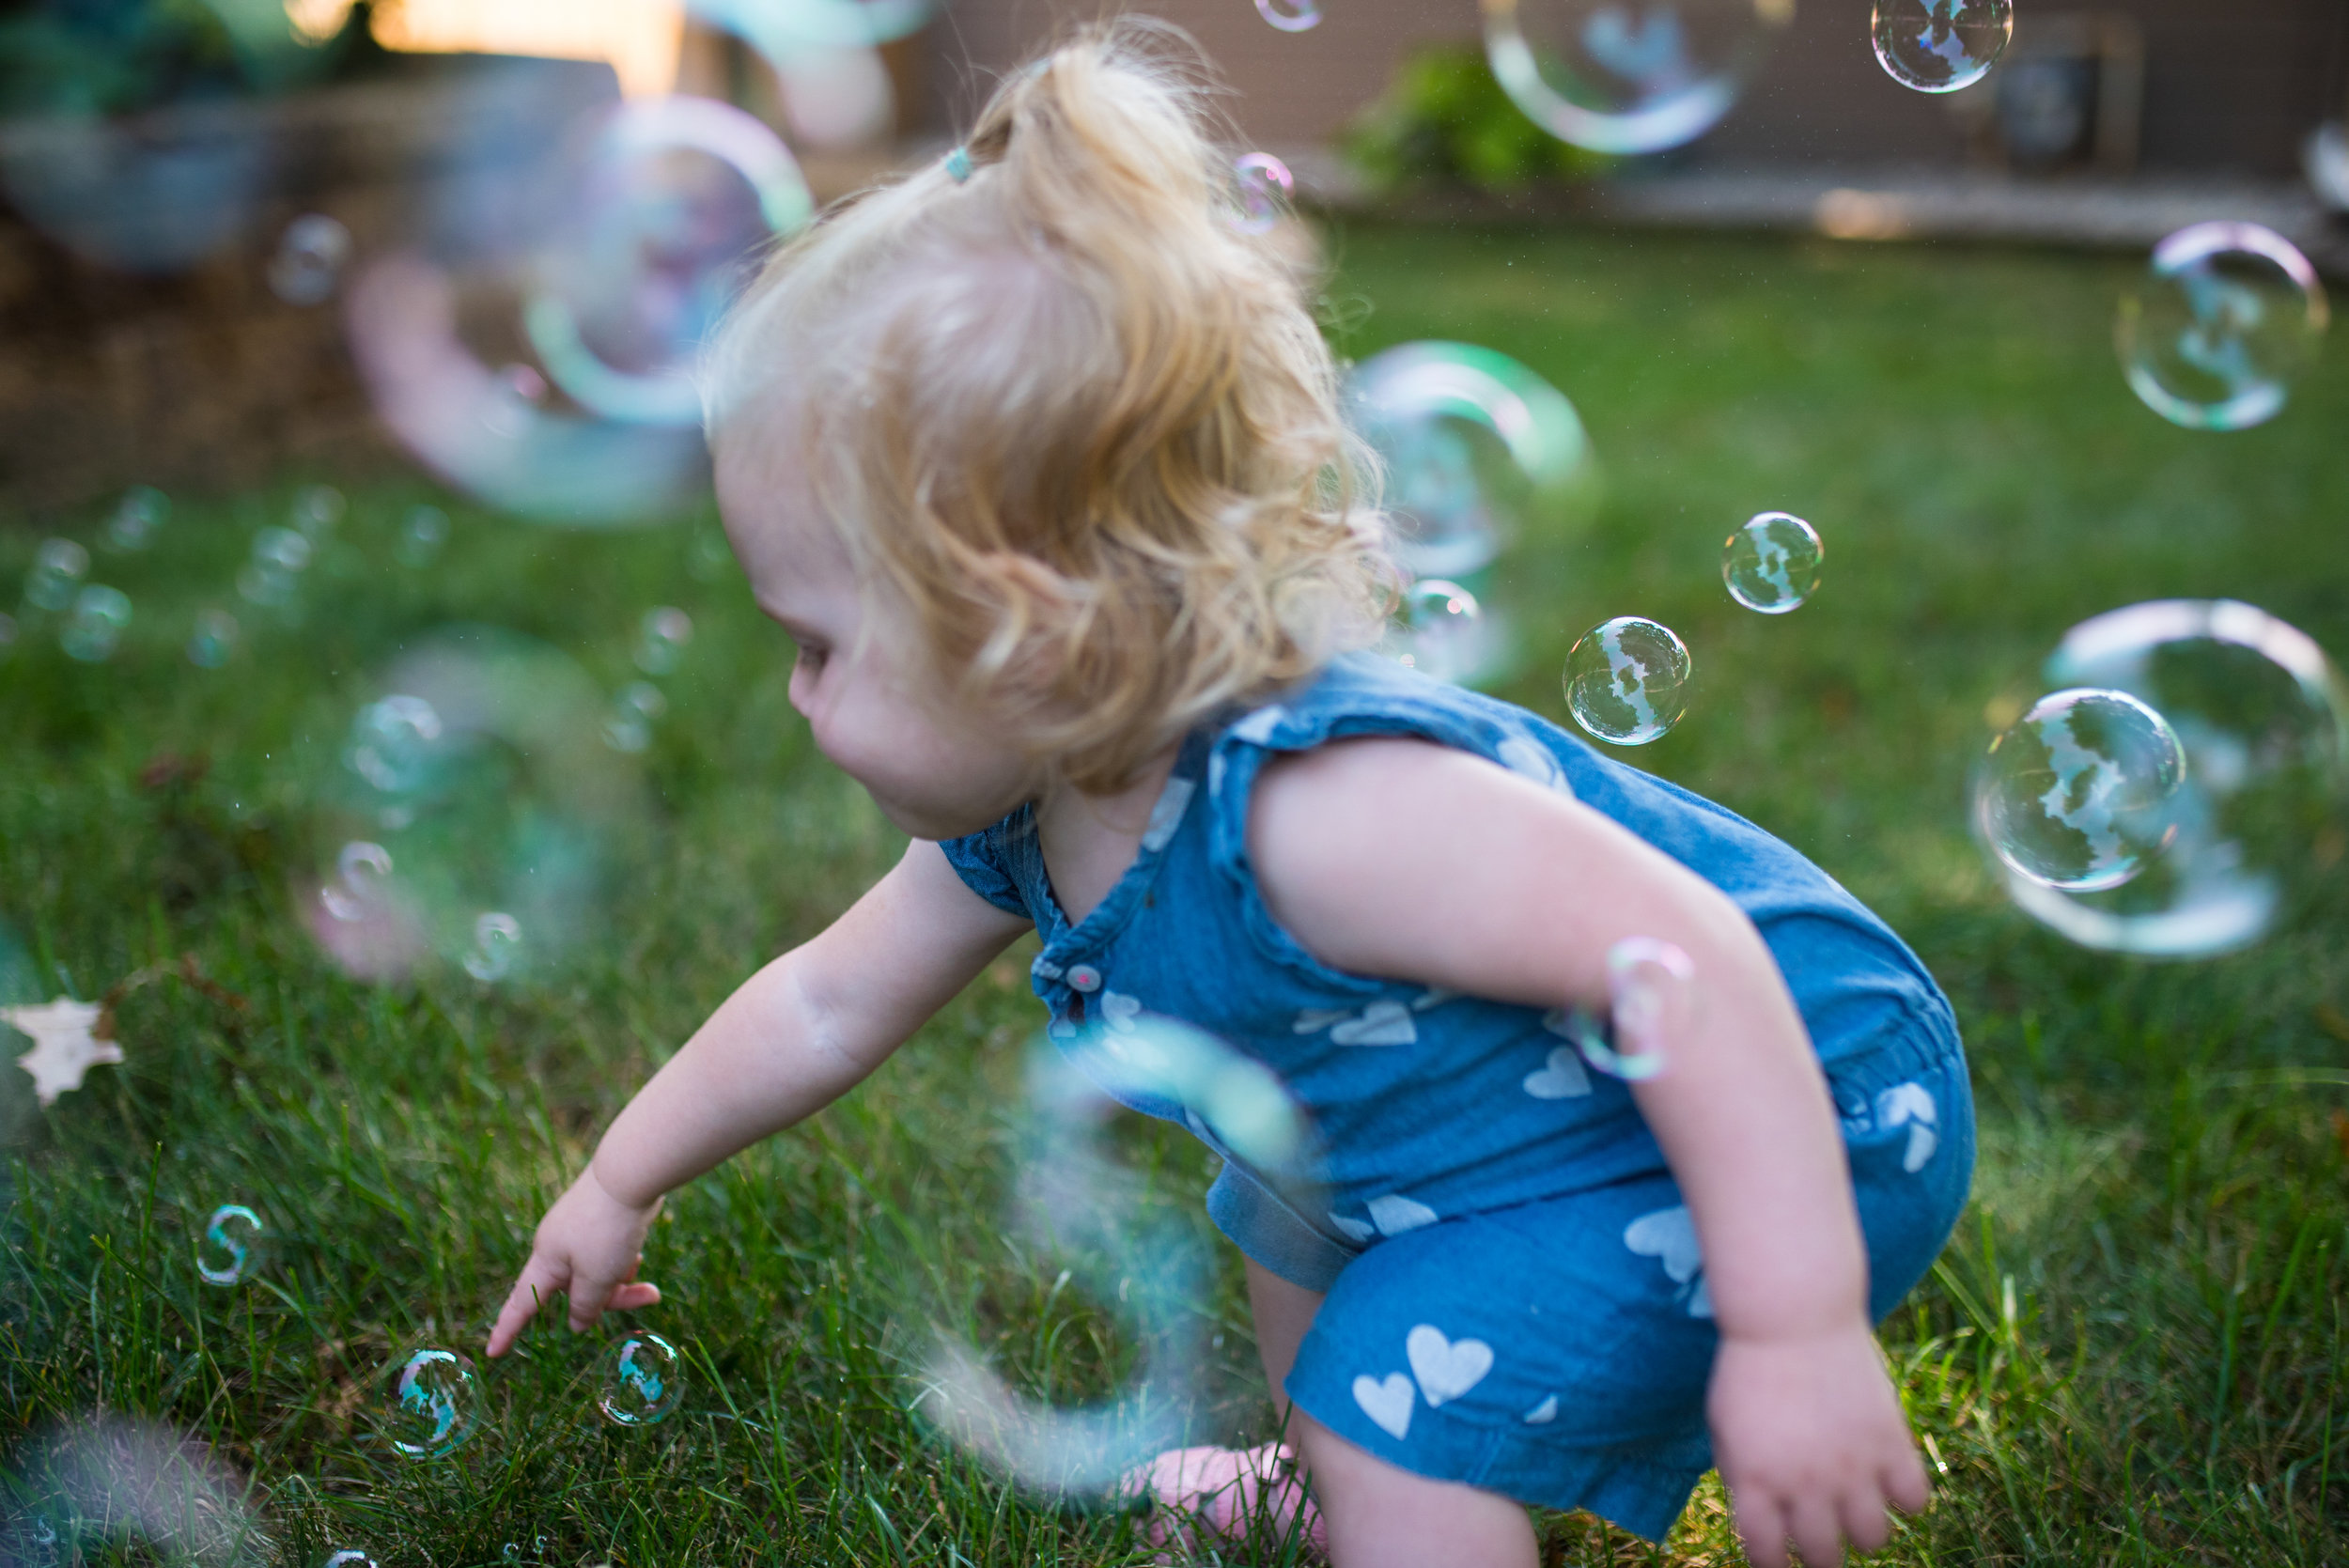 Toddler girl playing with bubbles in the front yard trying to pop them